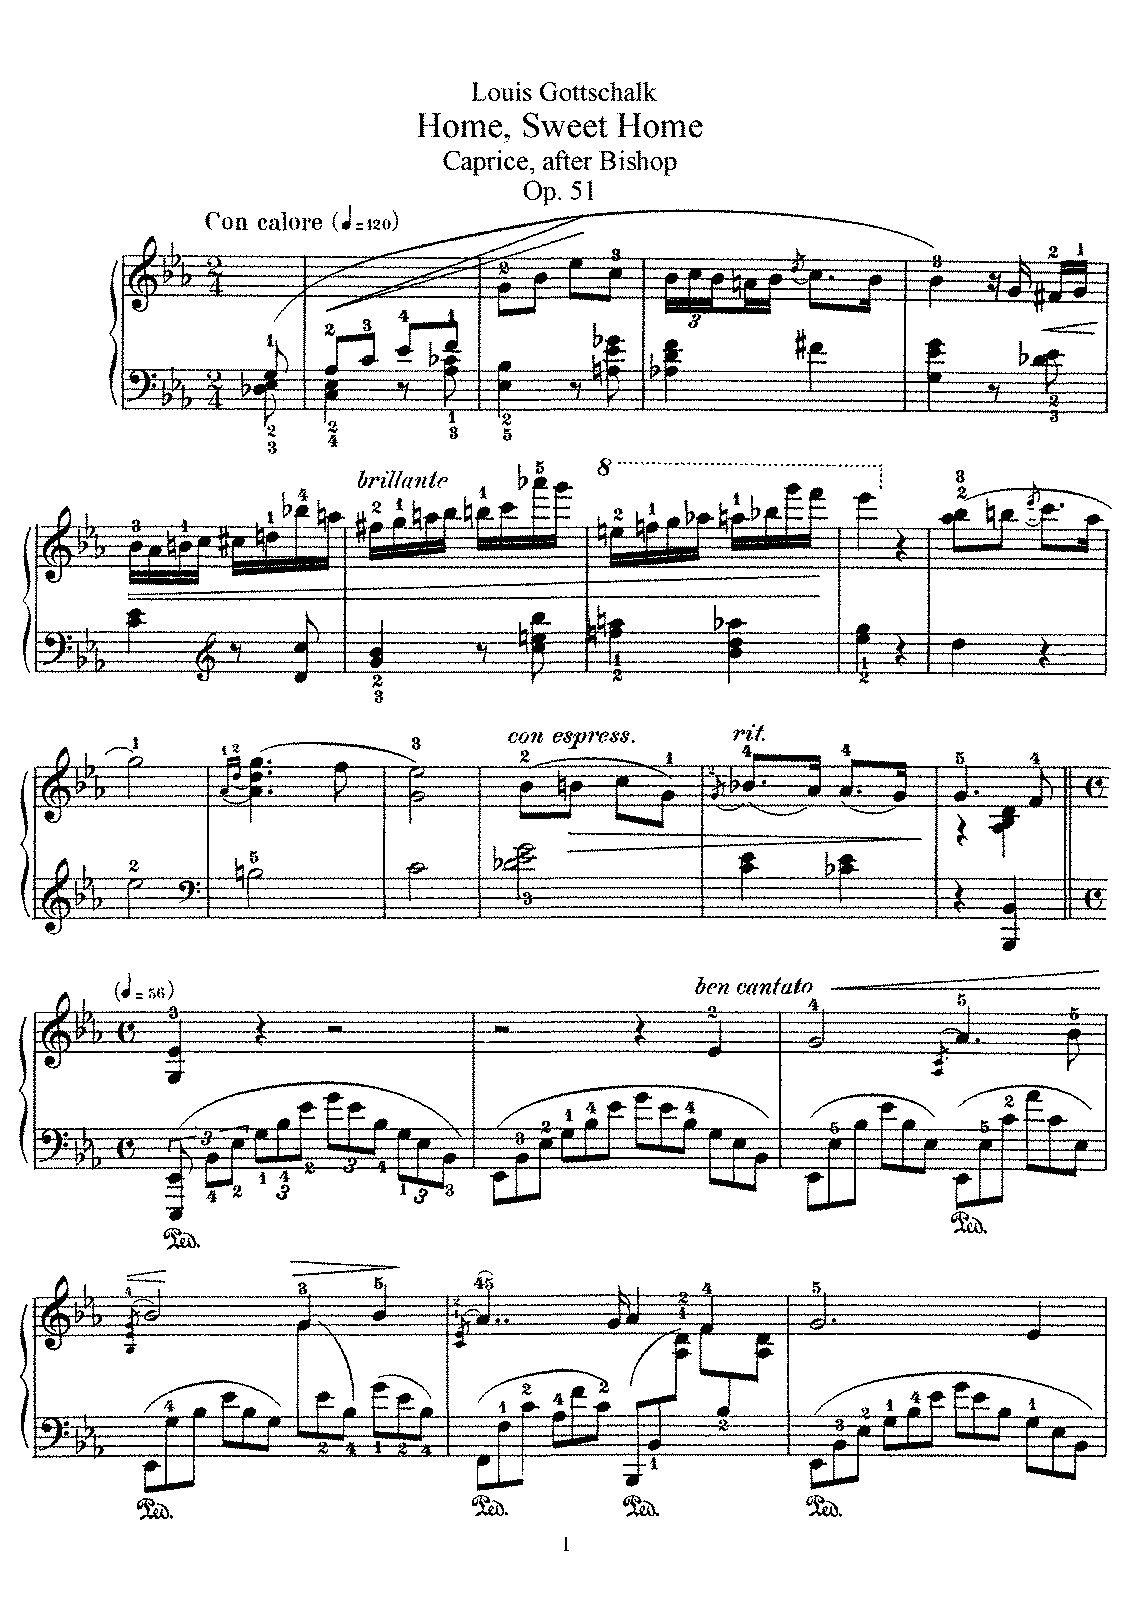 Gottschalk - Op.51 - Home Sweet Home, Caprice After Bishop.pdf